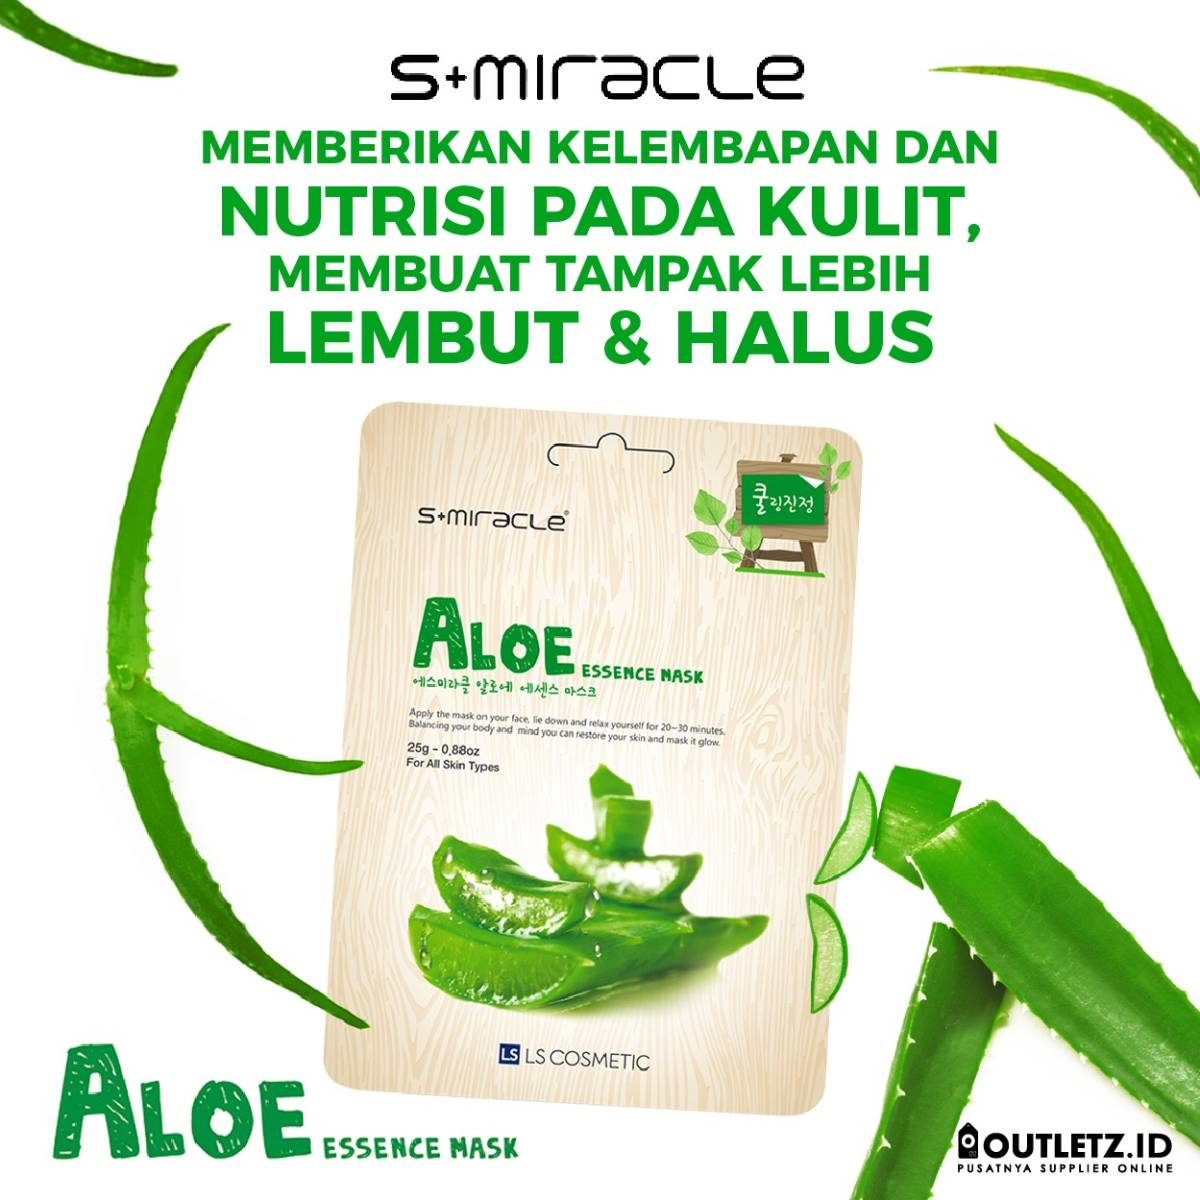 Masker Wajah Korea Aloe -s+miracle Aloe Essence Mask